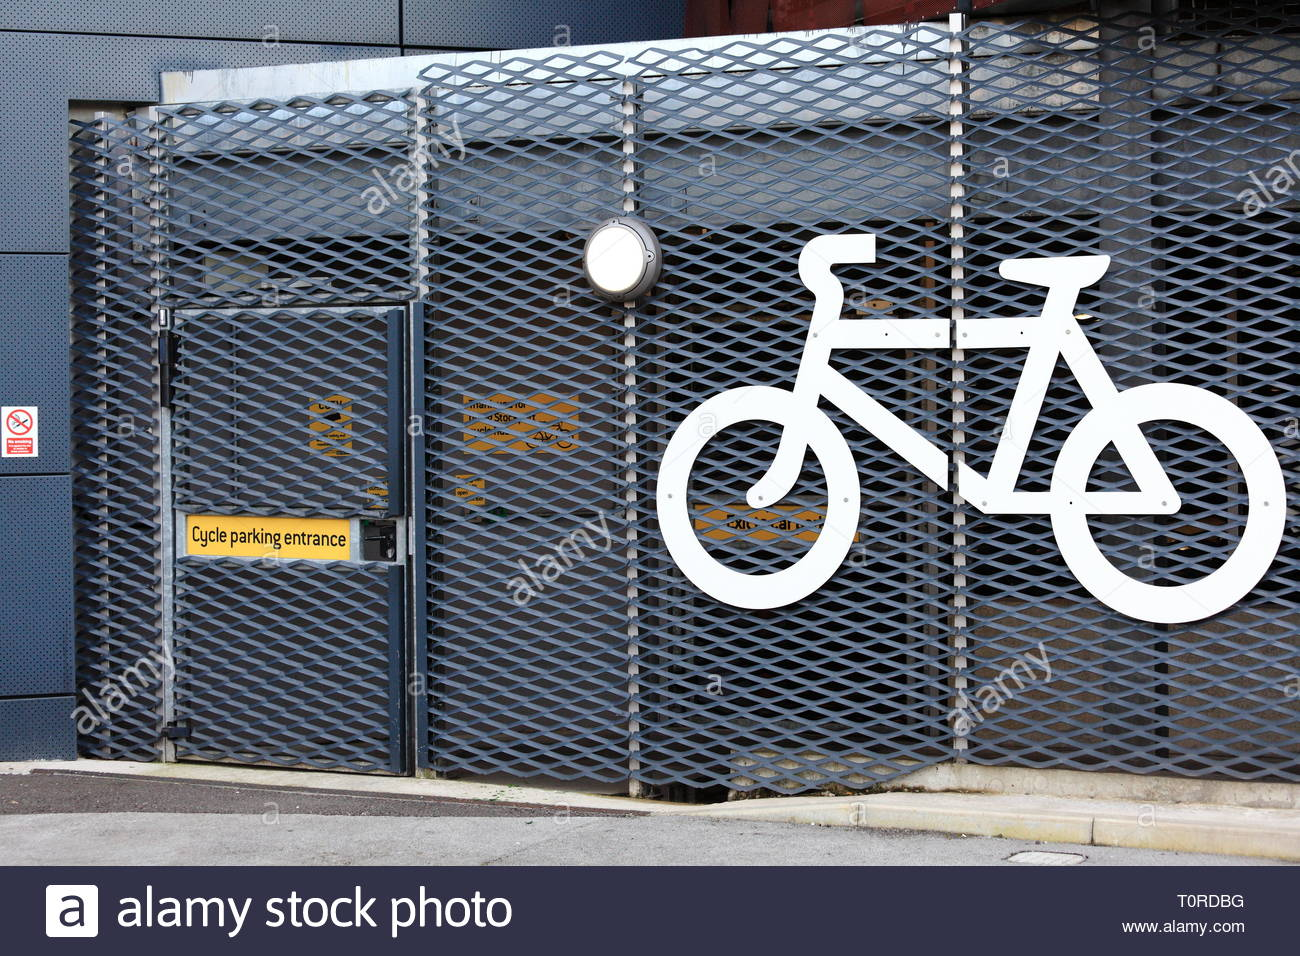 A bicycle parking station at stockport railway station at Stockport UK - Stock Image